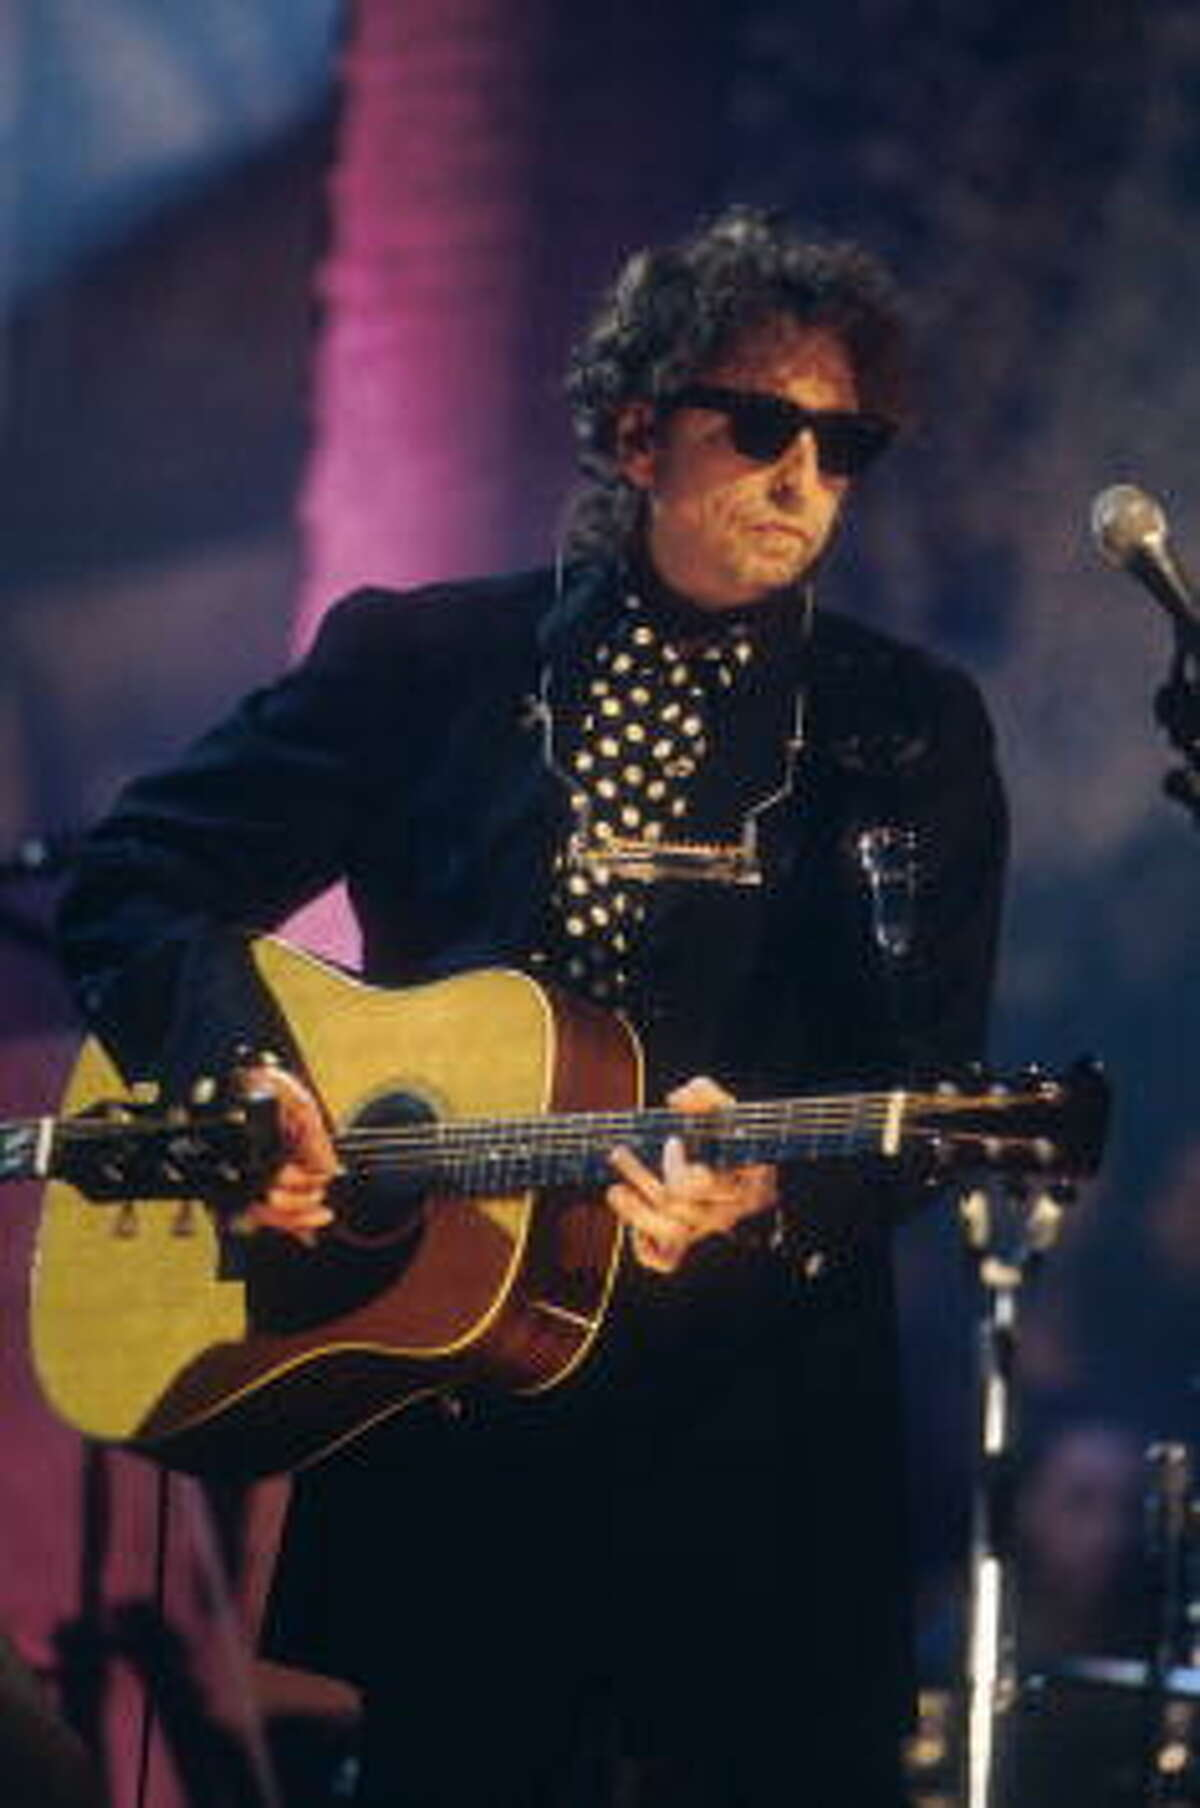 Bob Dylan performing on MTV unplugged at the Sony Music Studio in New York City on November 18, 1994.